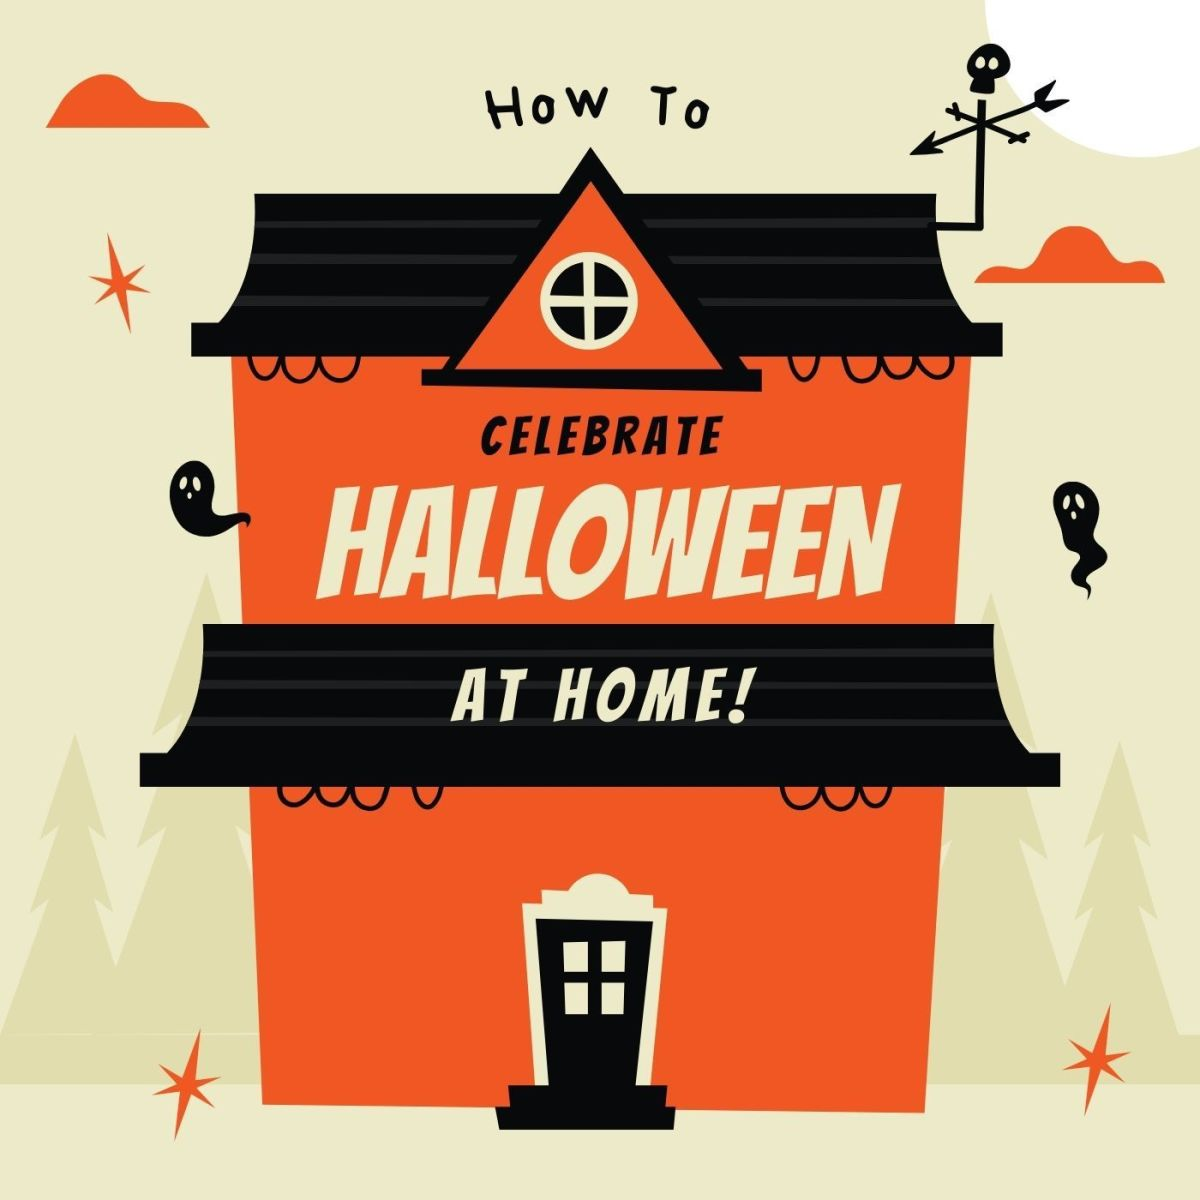 Stuck at home this Halloween? No problem!